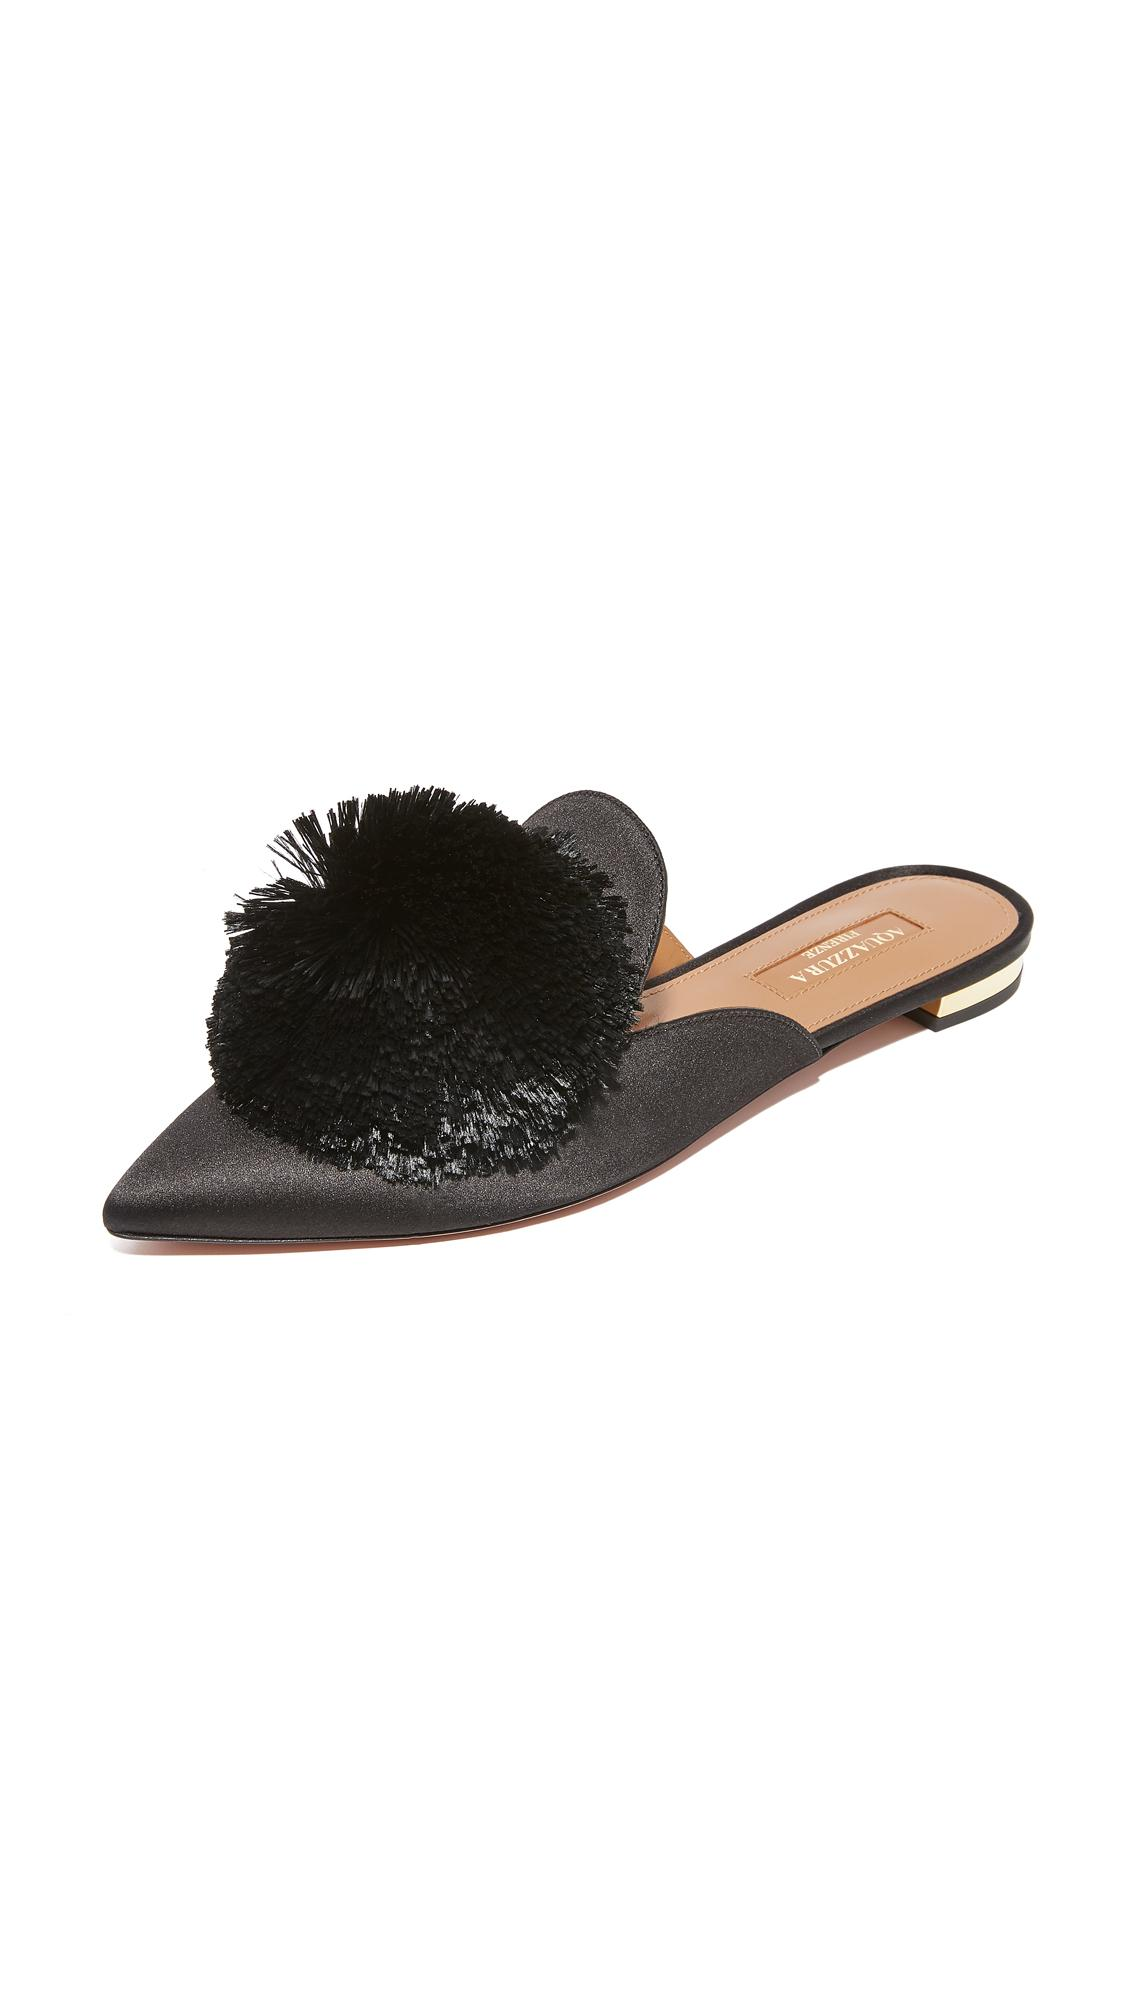 13c343aa49d Aquazzura Powder Puff Flats in Black - Lyst